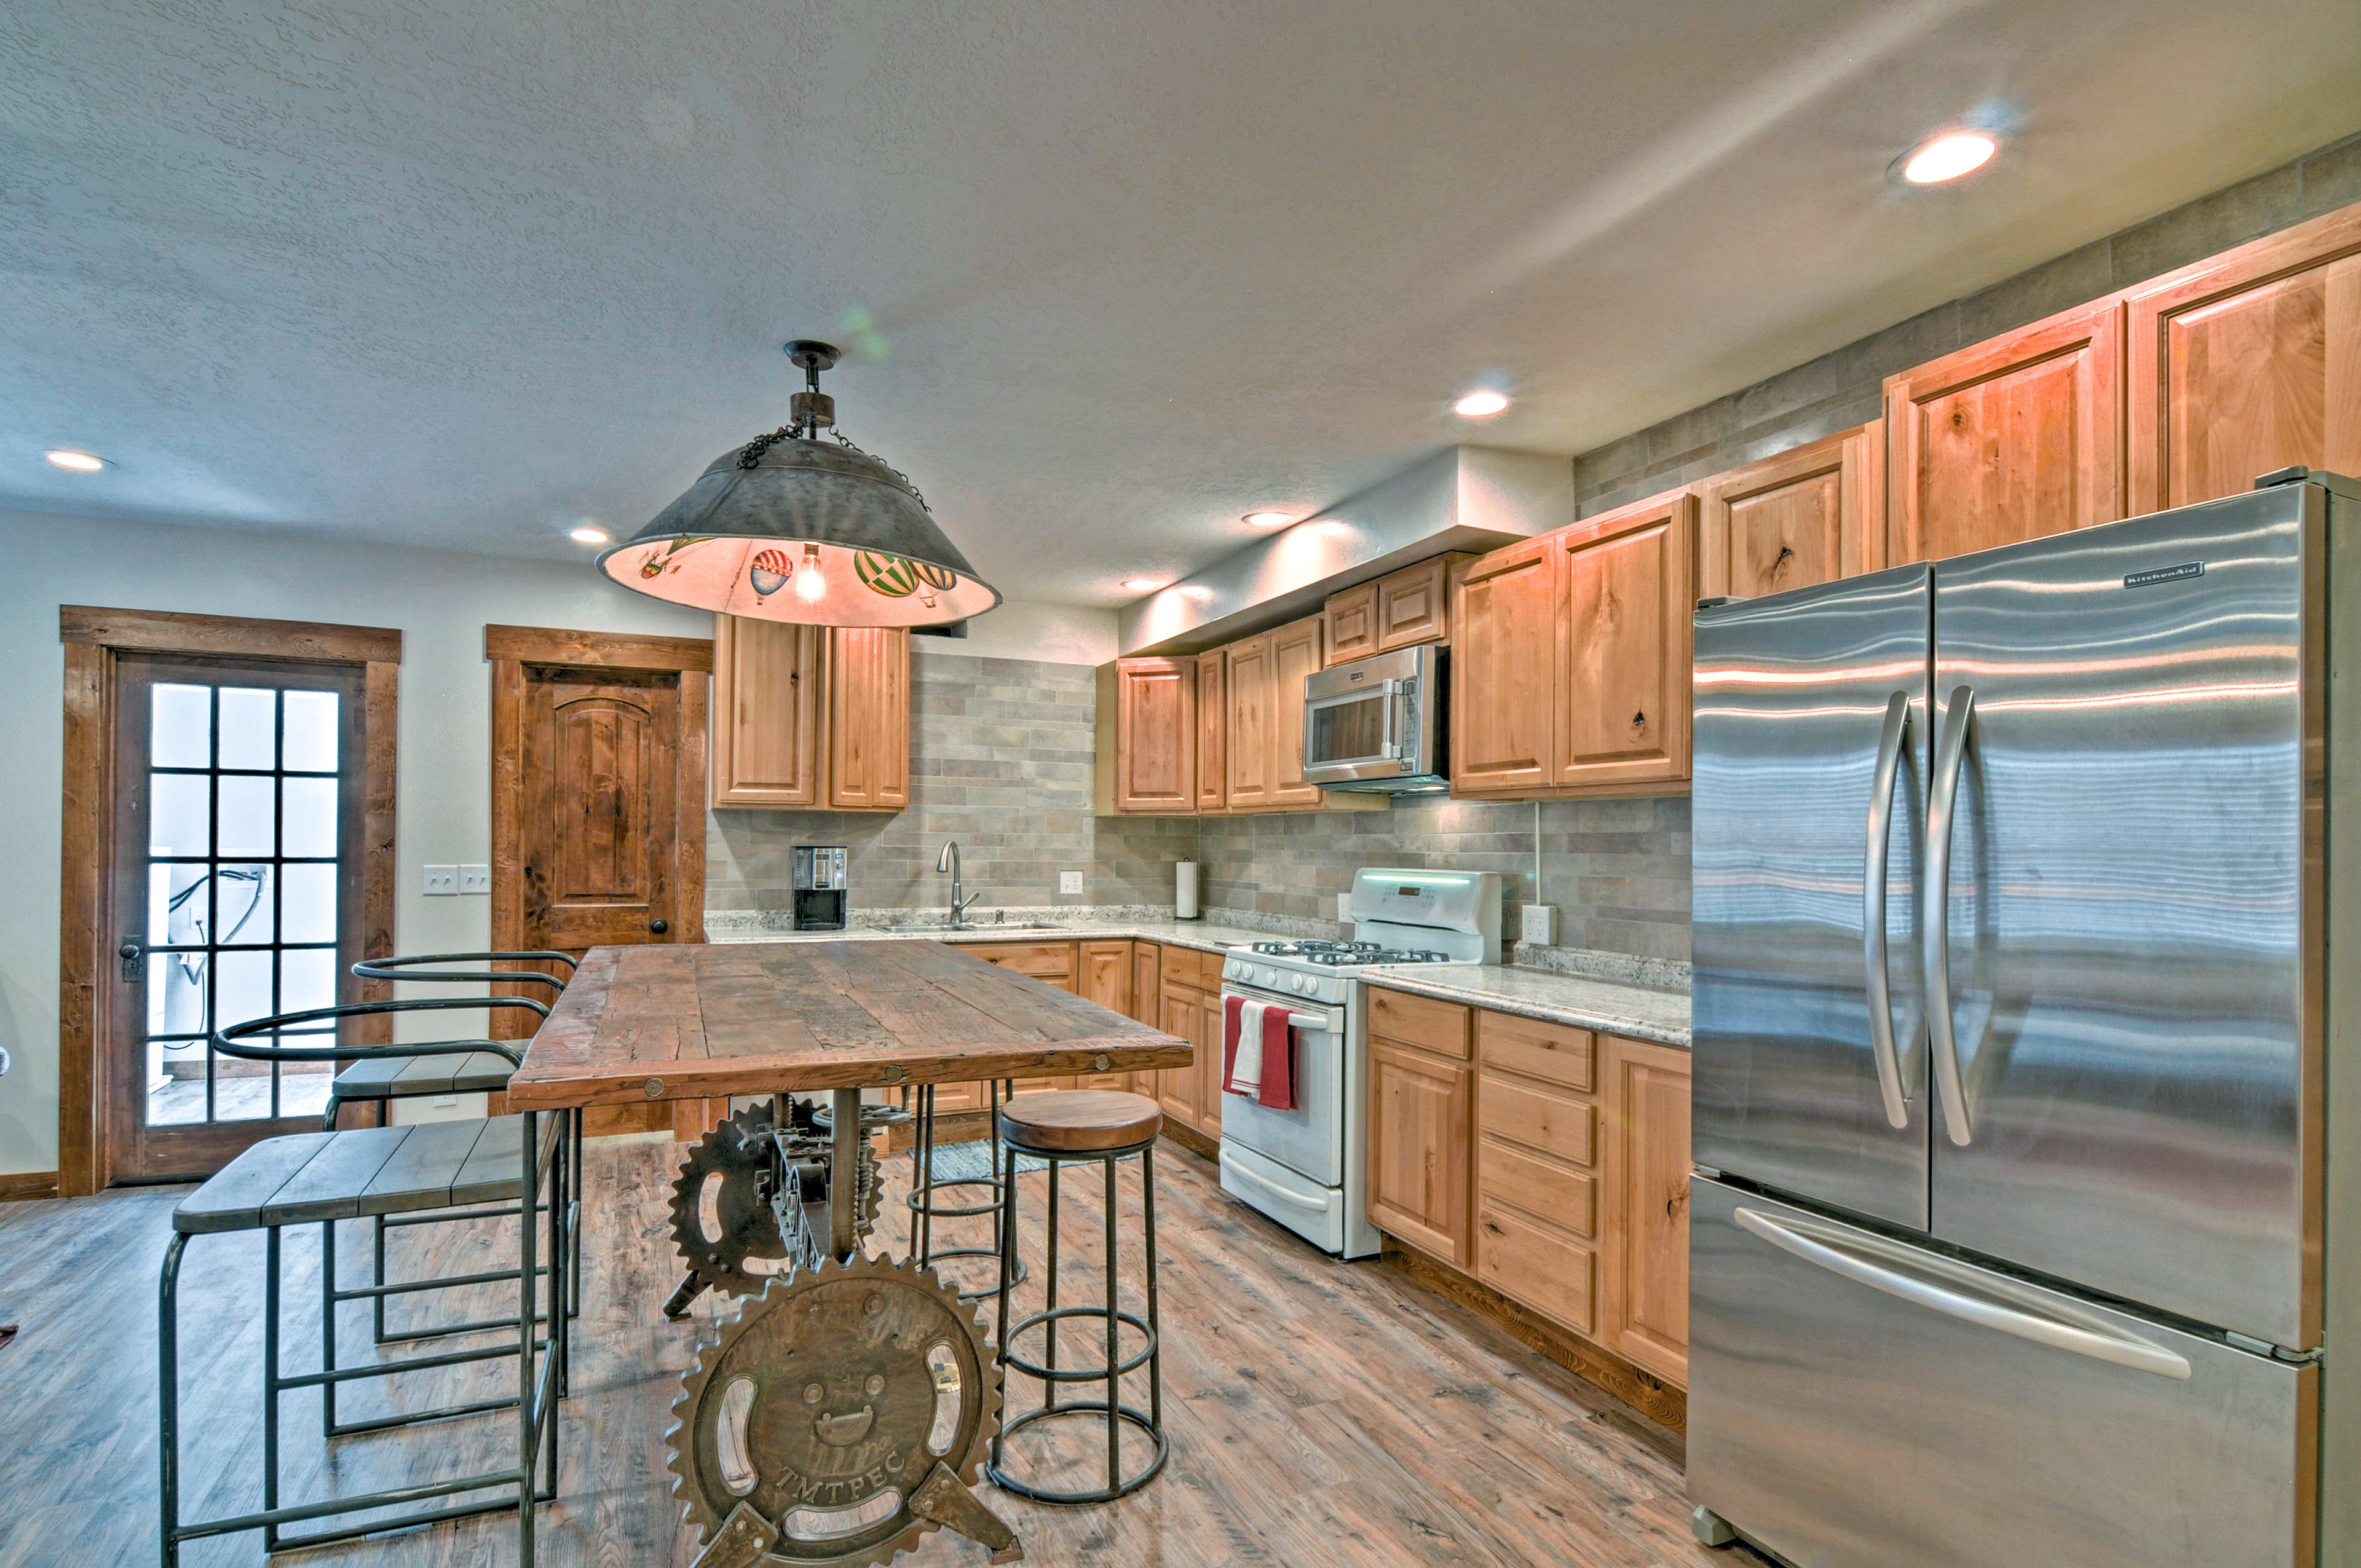 Salina Vacation Rental Condo | 2BR | 1BA | 1,100 Sq Ft | Stairs Required